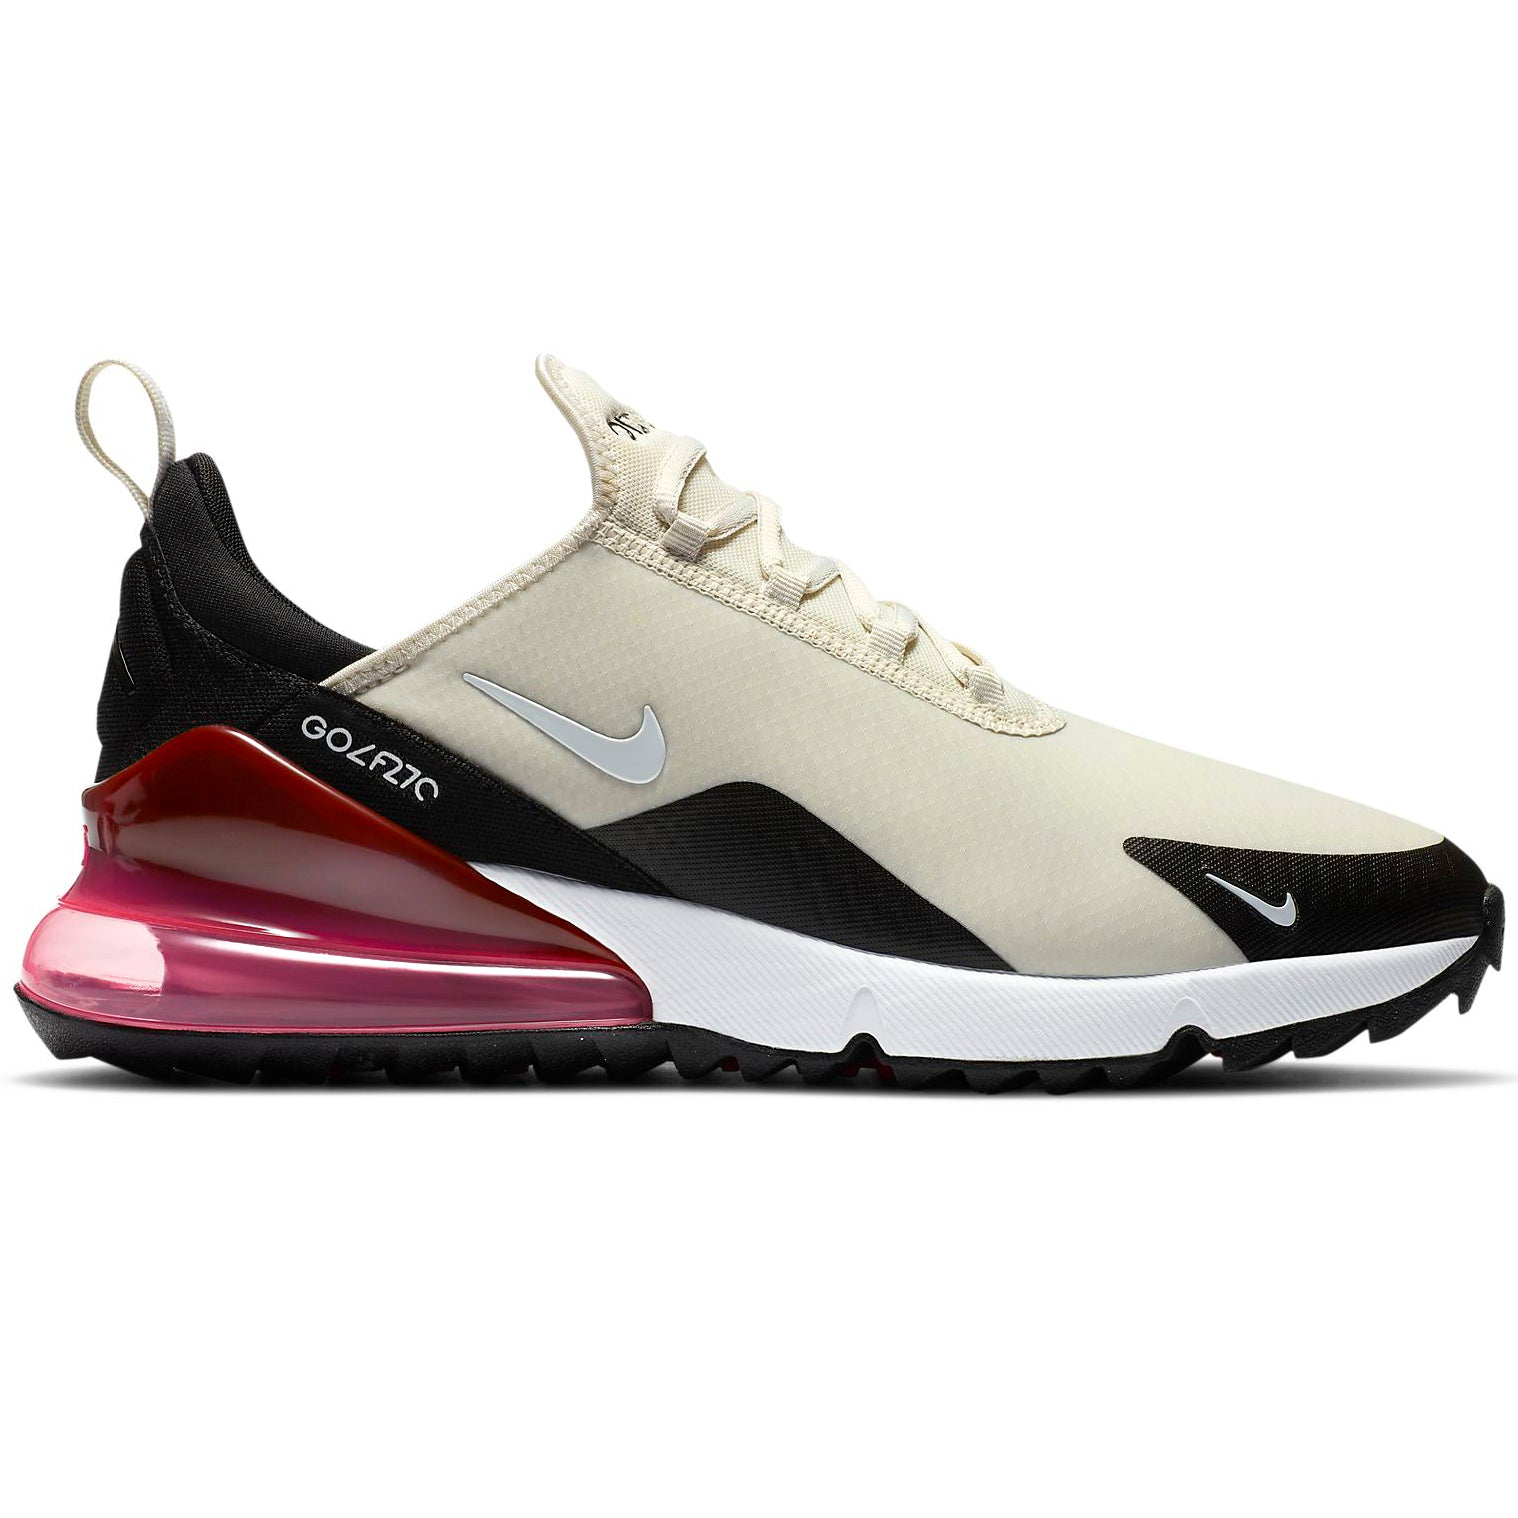 Nike Golf Air Max 270 G Shoes